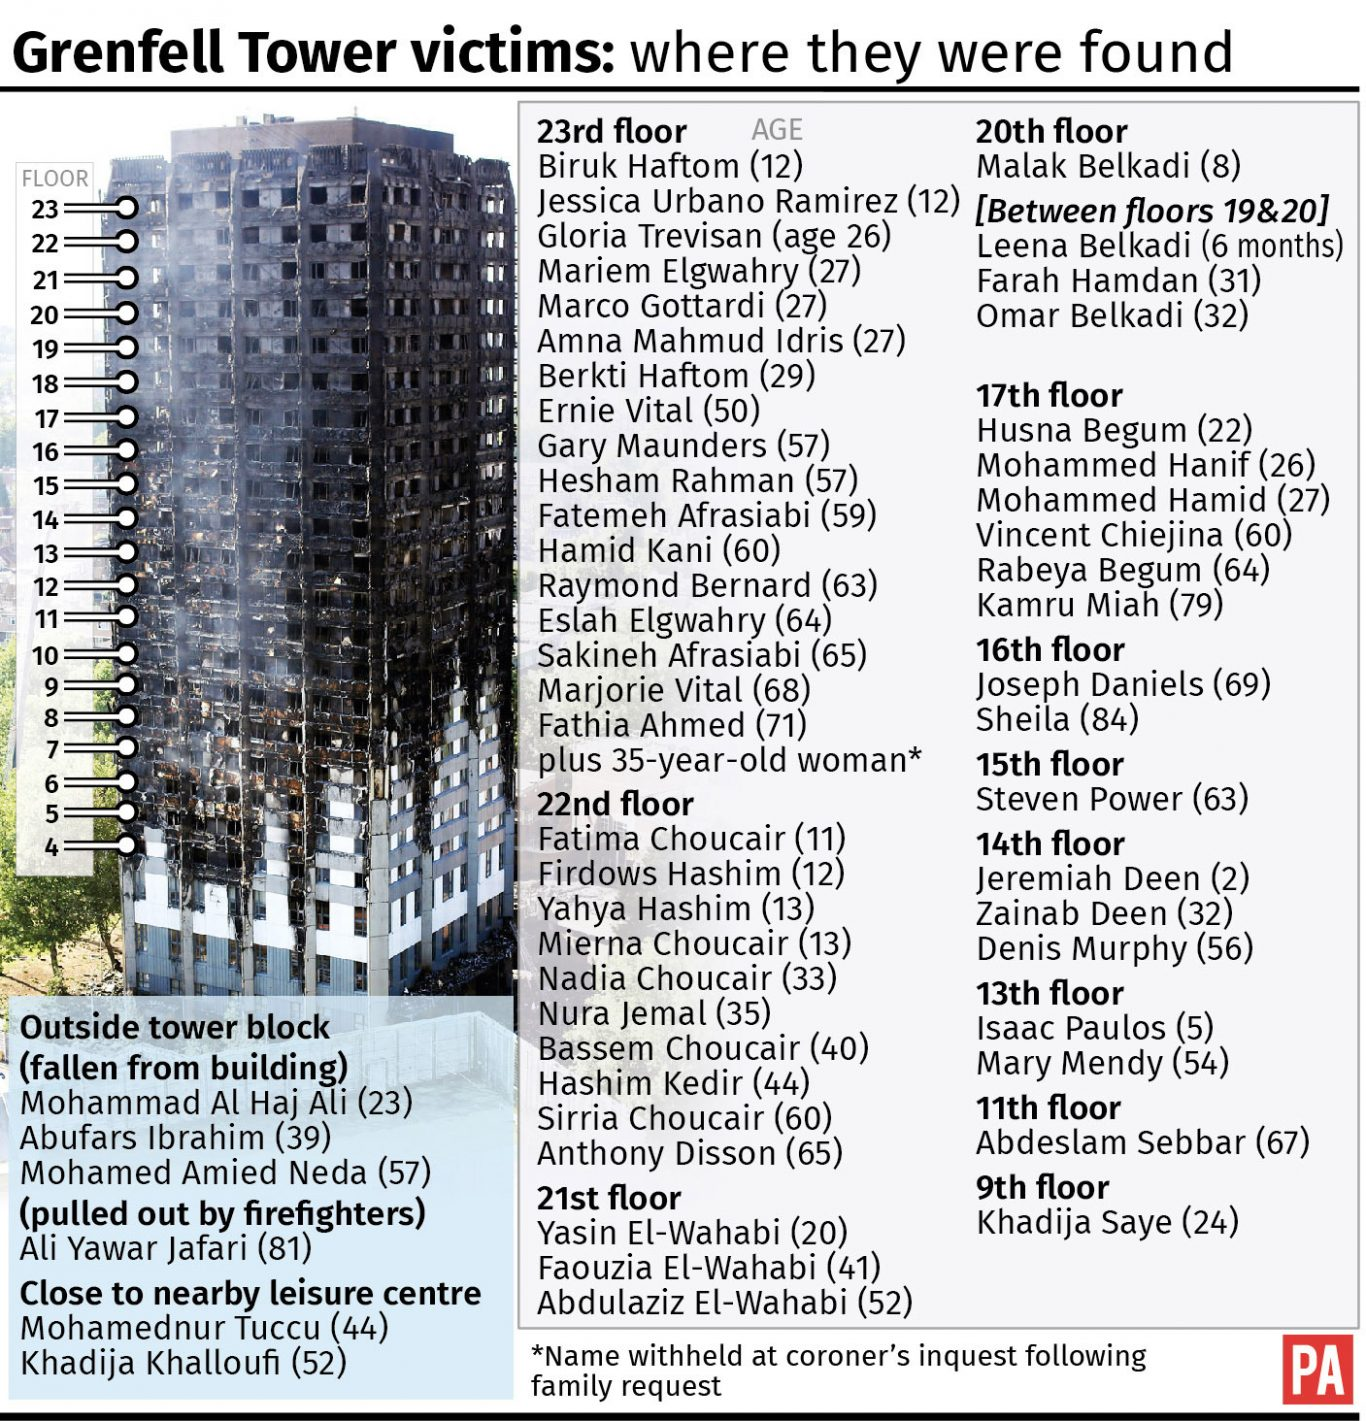 United Kingdom police consider individual manslaughter charges over Grenfell fire